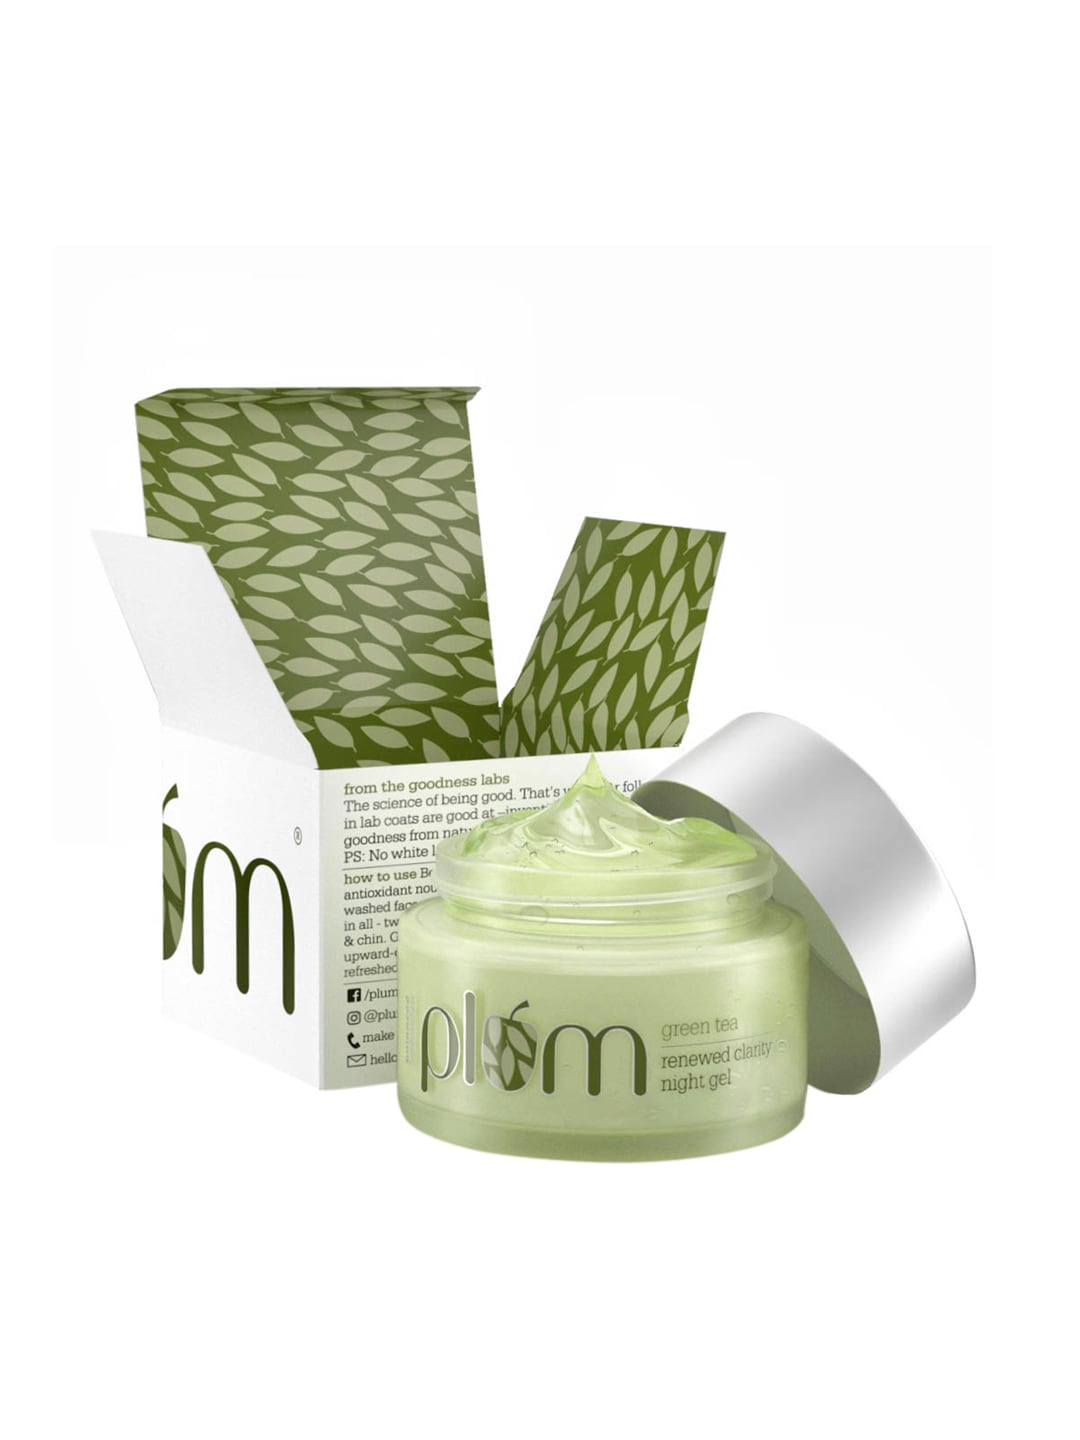 Plum Face Moisturizing Night Cream for Oily Skin image